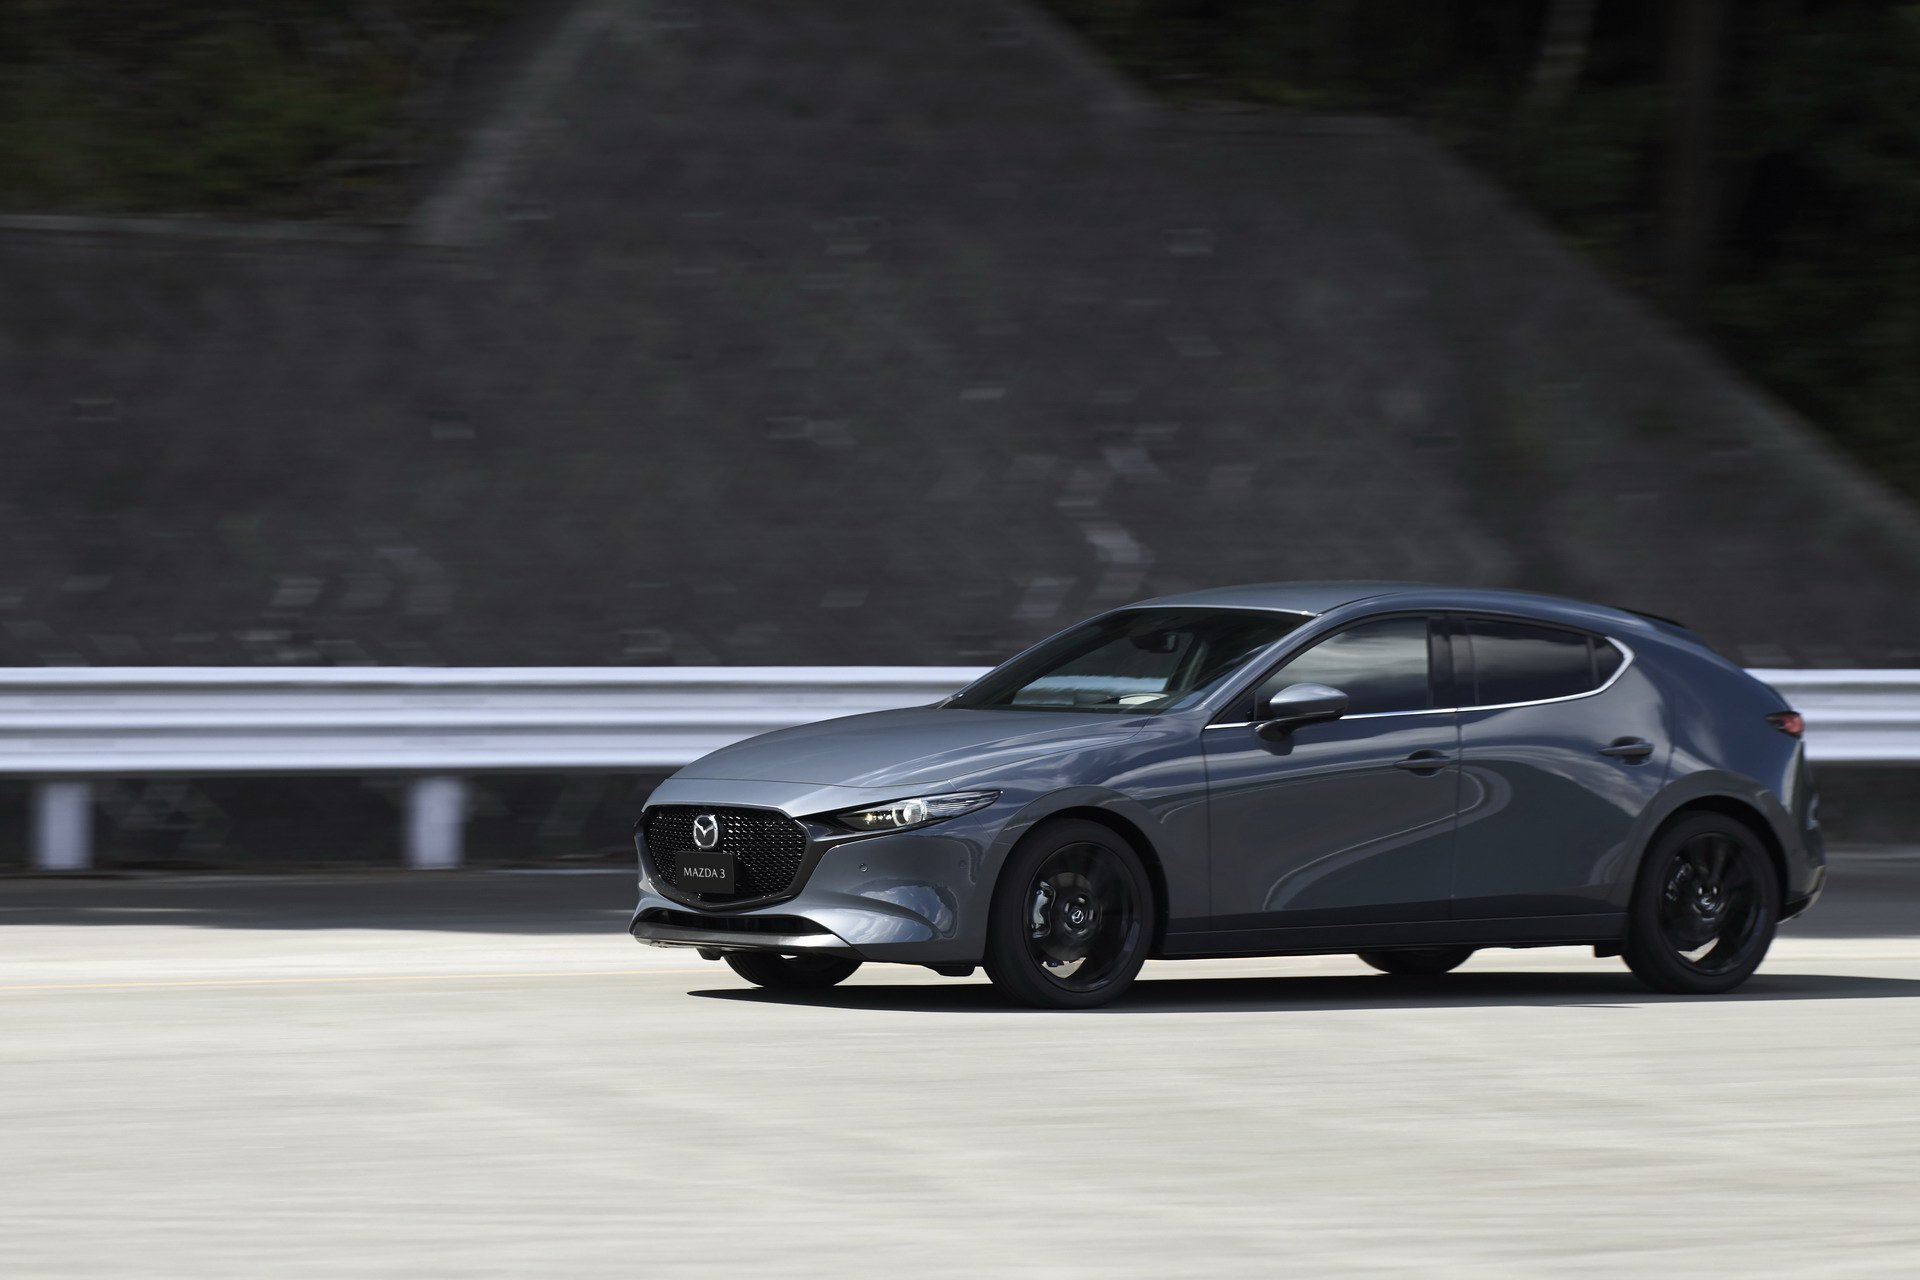 Mazda3 Hatchback and Mazda3 sedan 2019 (12)